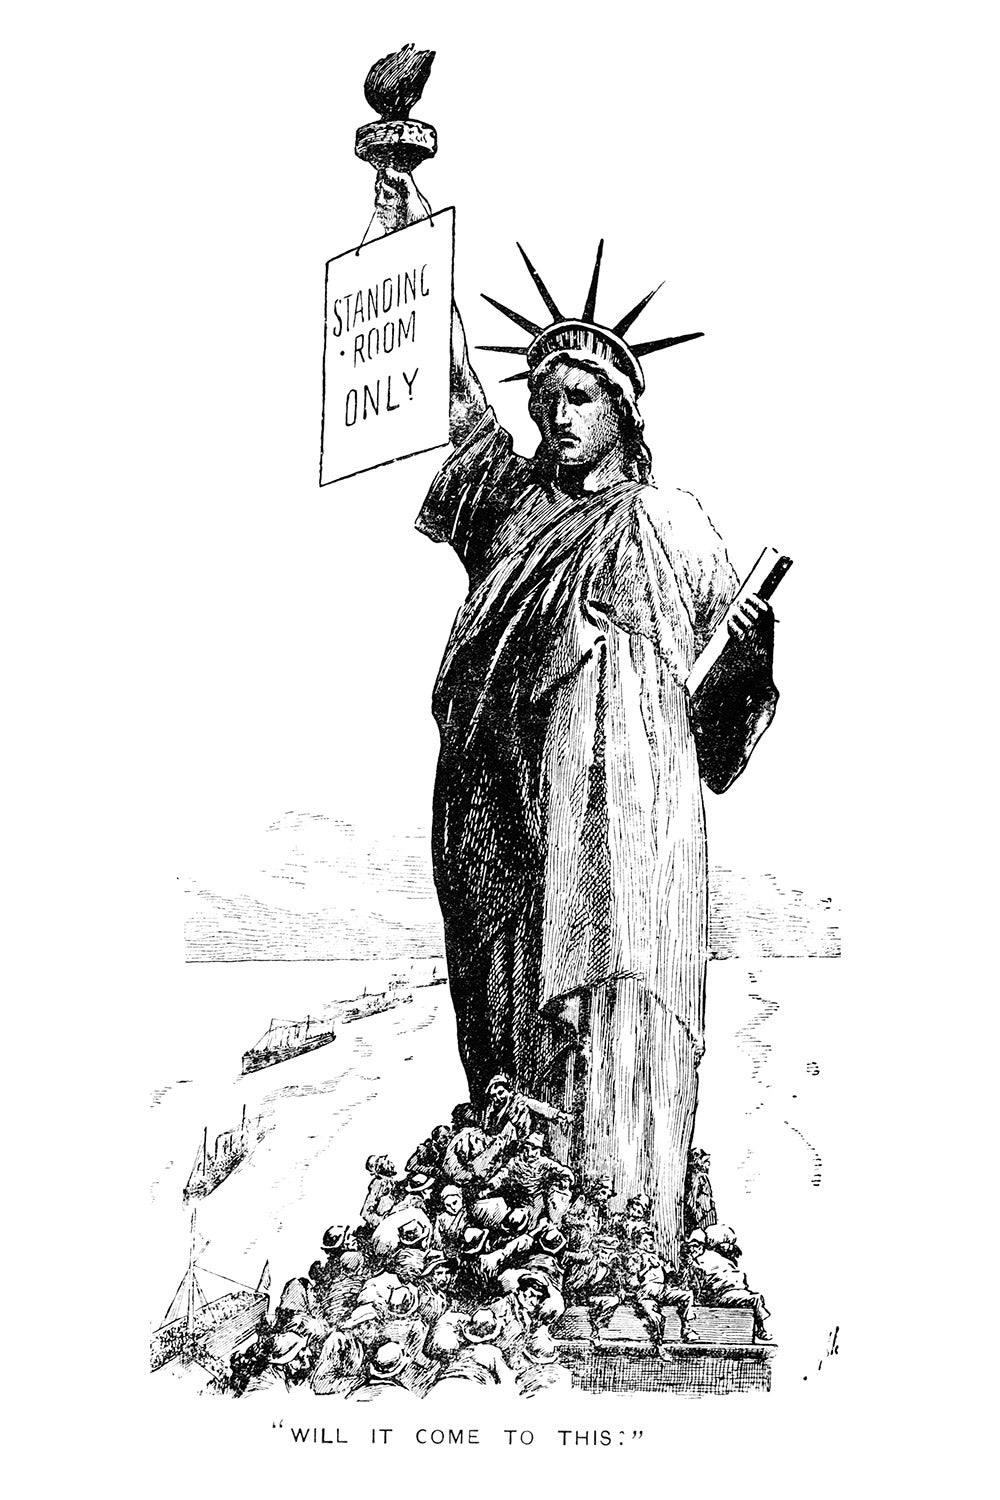 Statue of Liberty cartoon.